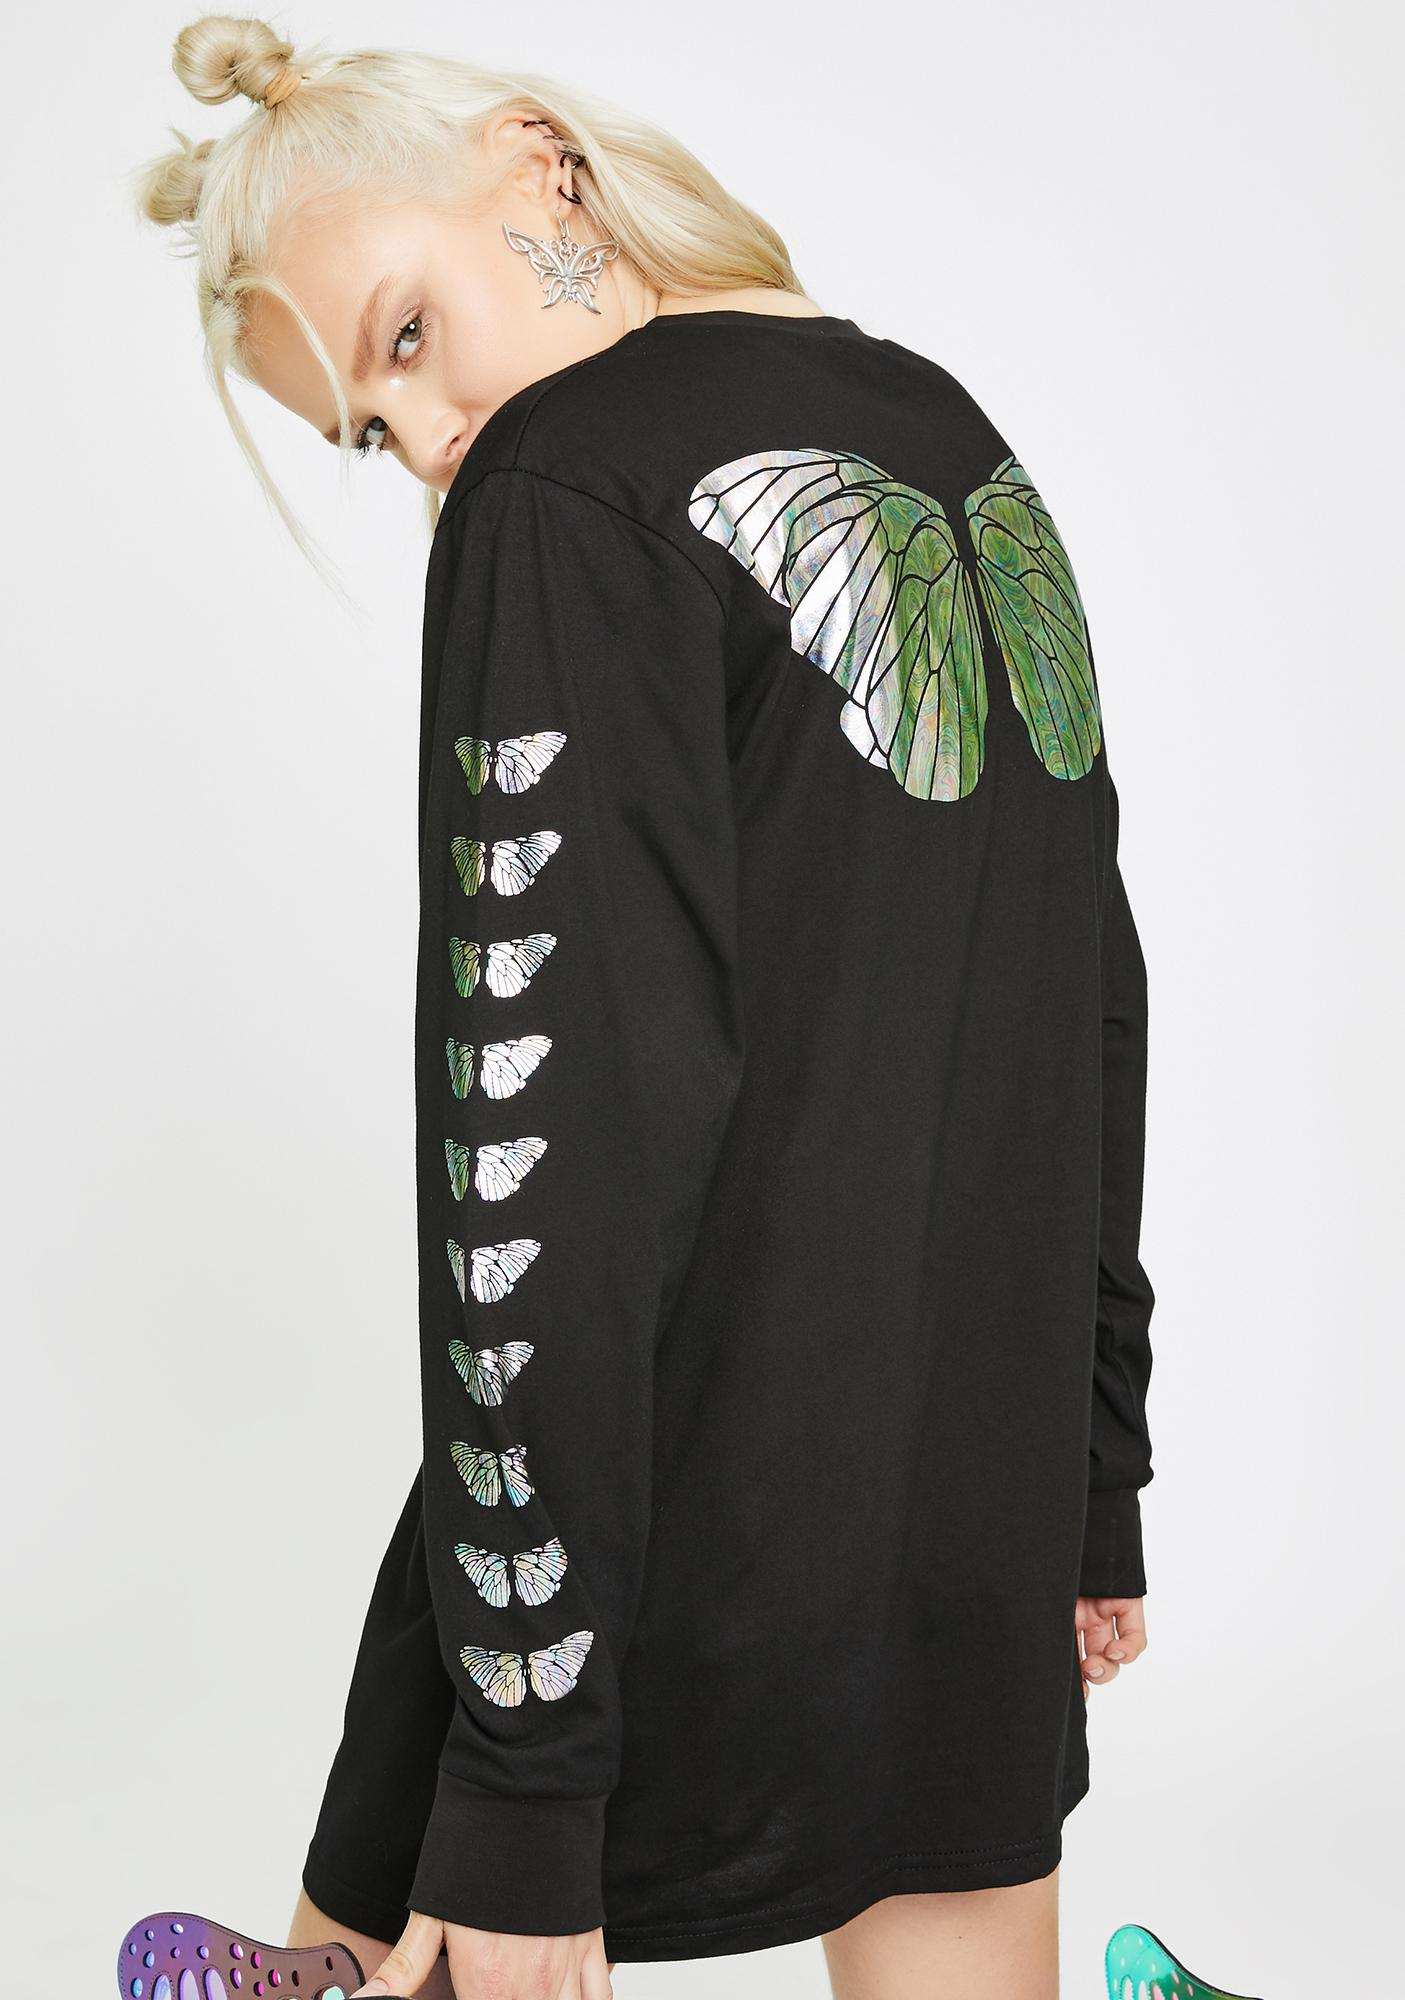 Club Exx Butterfly Effect Graphic Tee